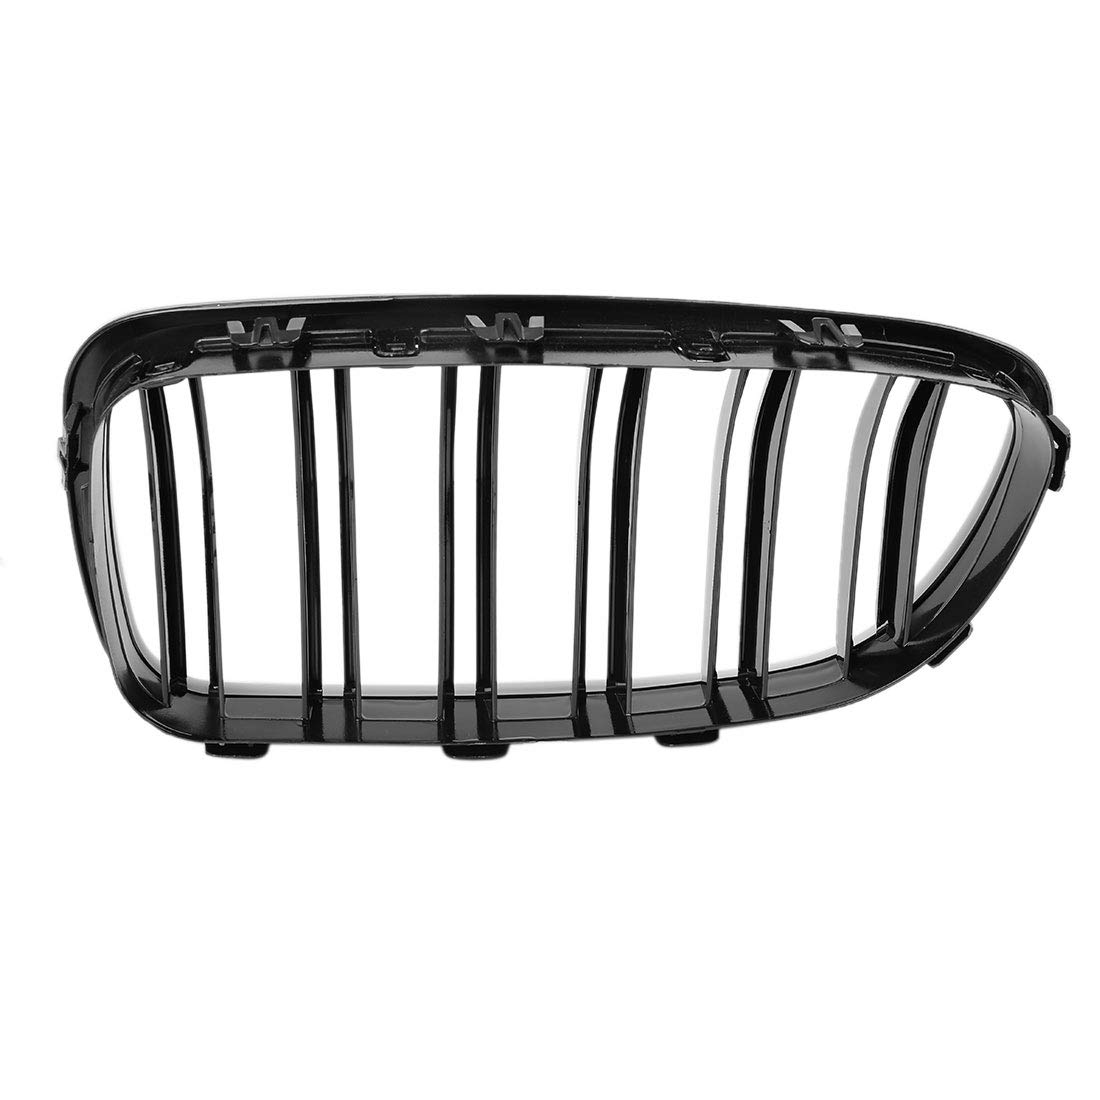 uxcell Gloss Black Front Hood Kidney Grille Grill For BMW F10 F18 5 Series 2010-2013